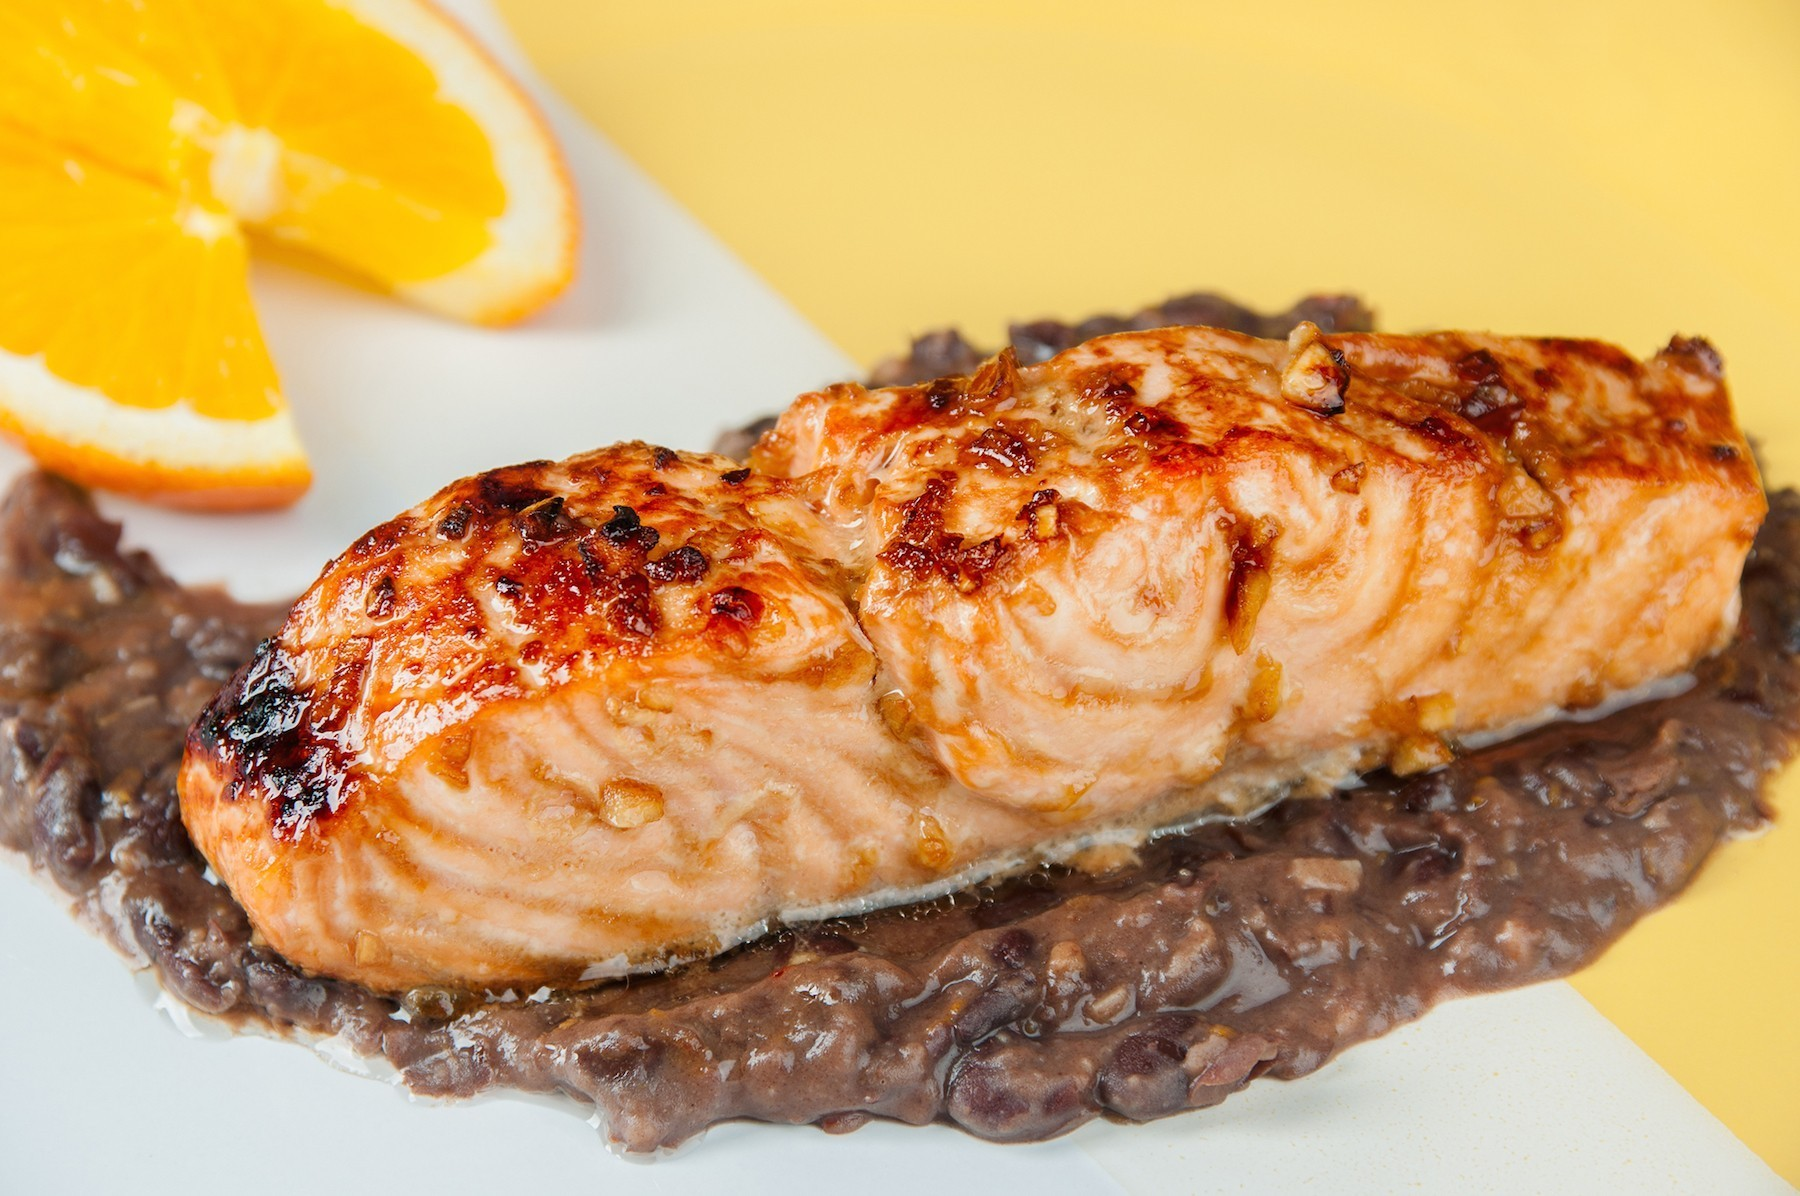 , Study, omega-3s from fish and lower mortality from colorectal cancer